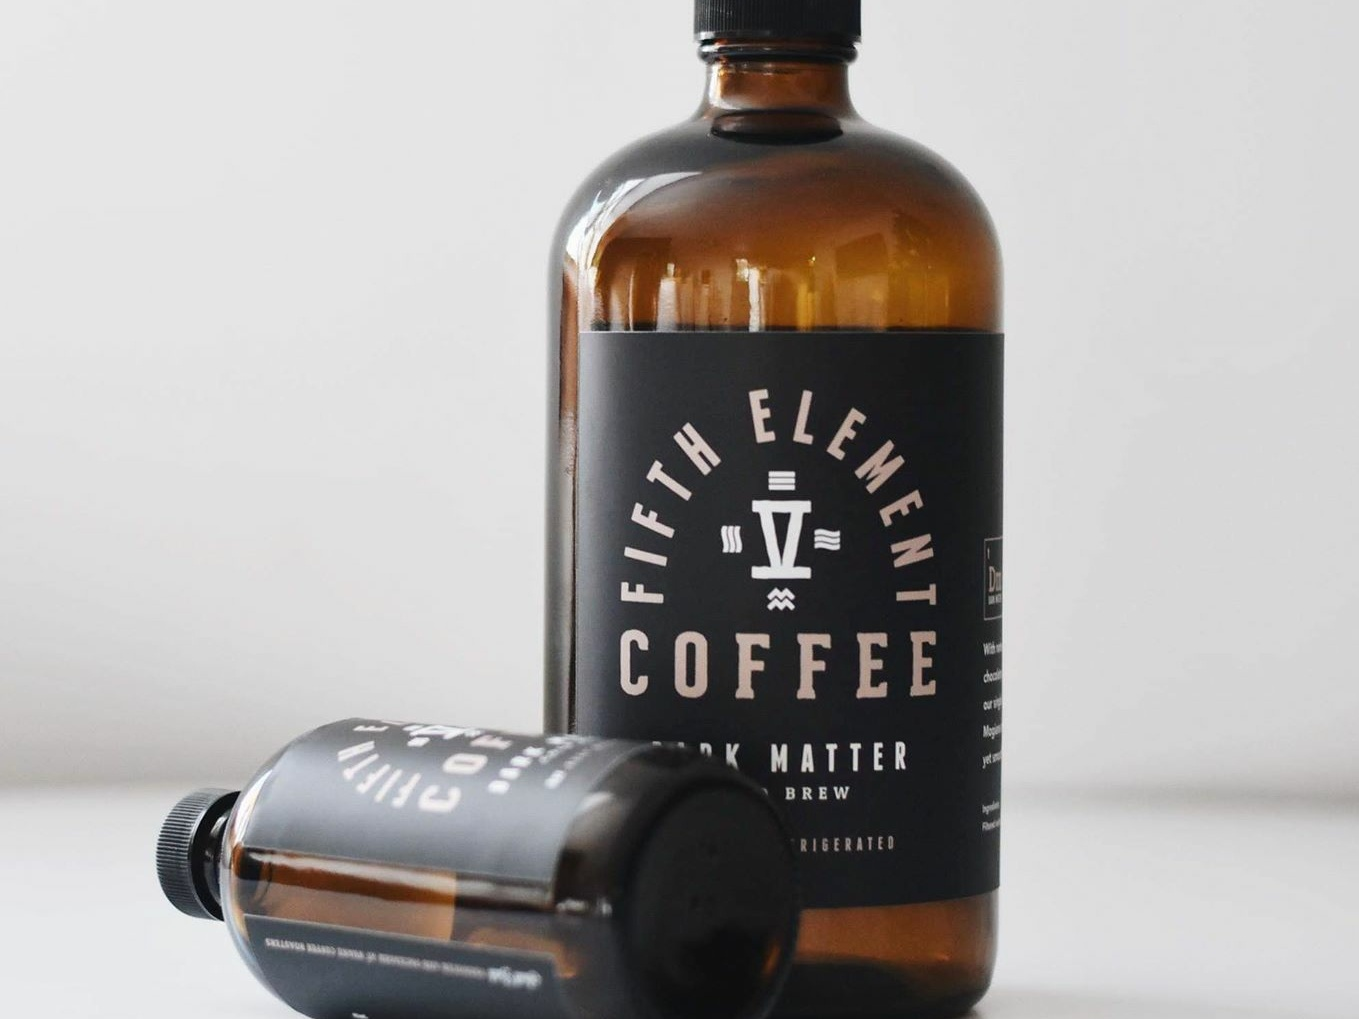 Fifth Element Coffee Bottle Labels minimal clean coffee branding coffee shop logo product photography packaging label design branding